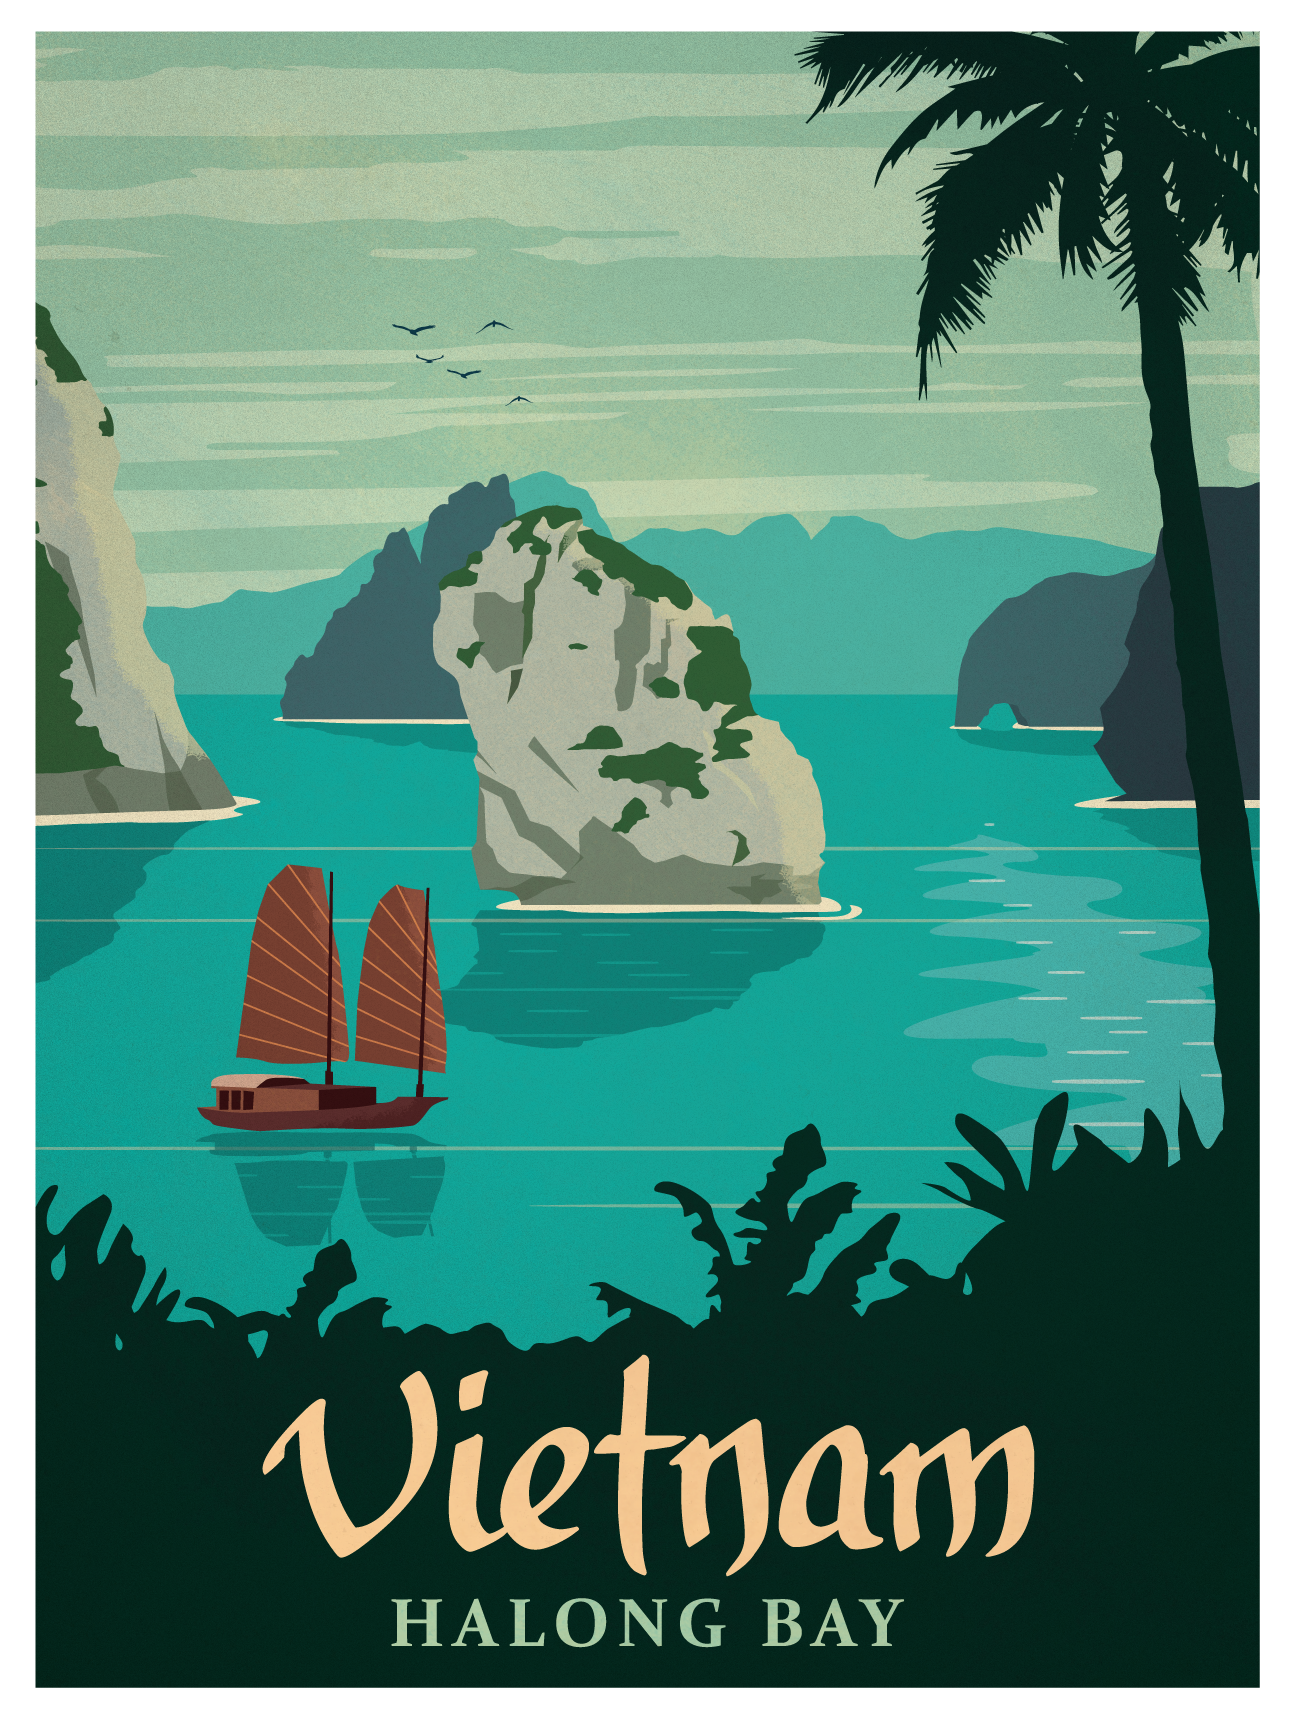 Vintage Vietnam Poster Vintage Travel Posters Retro Travel